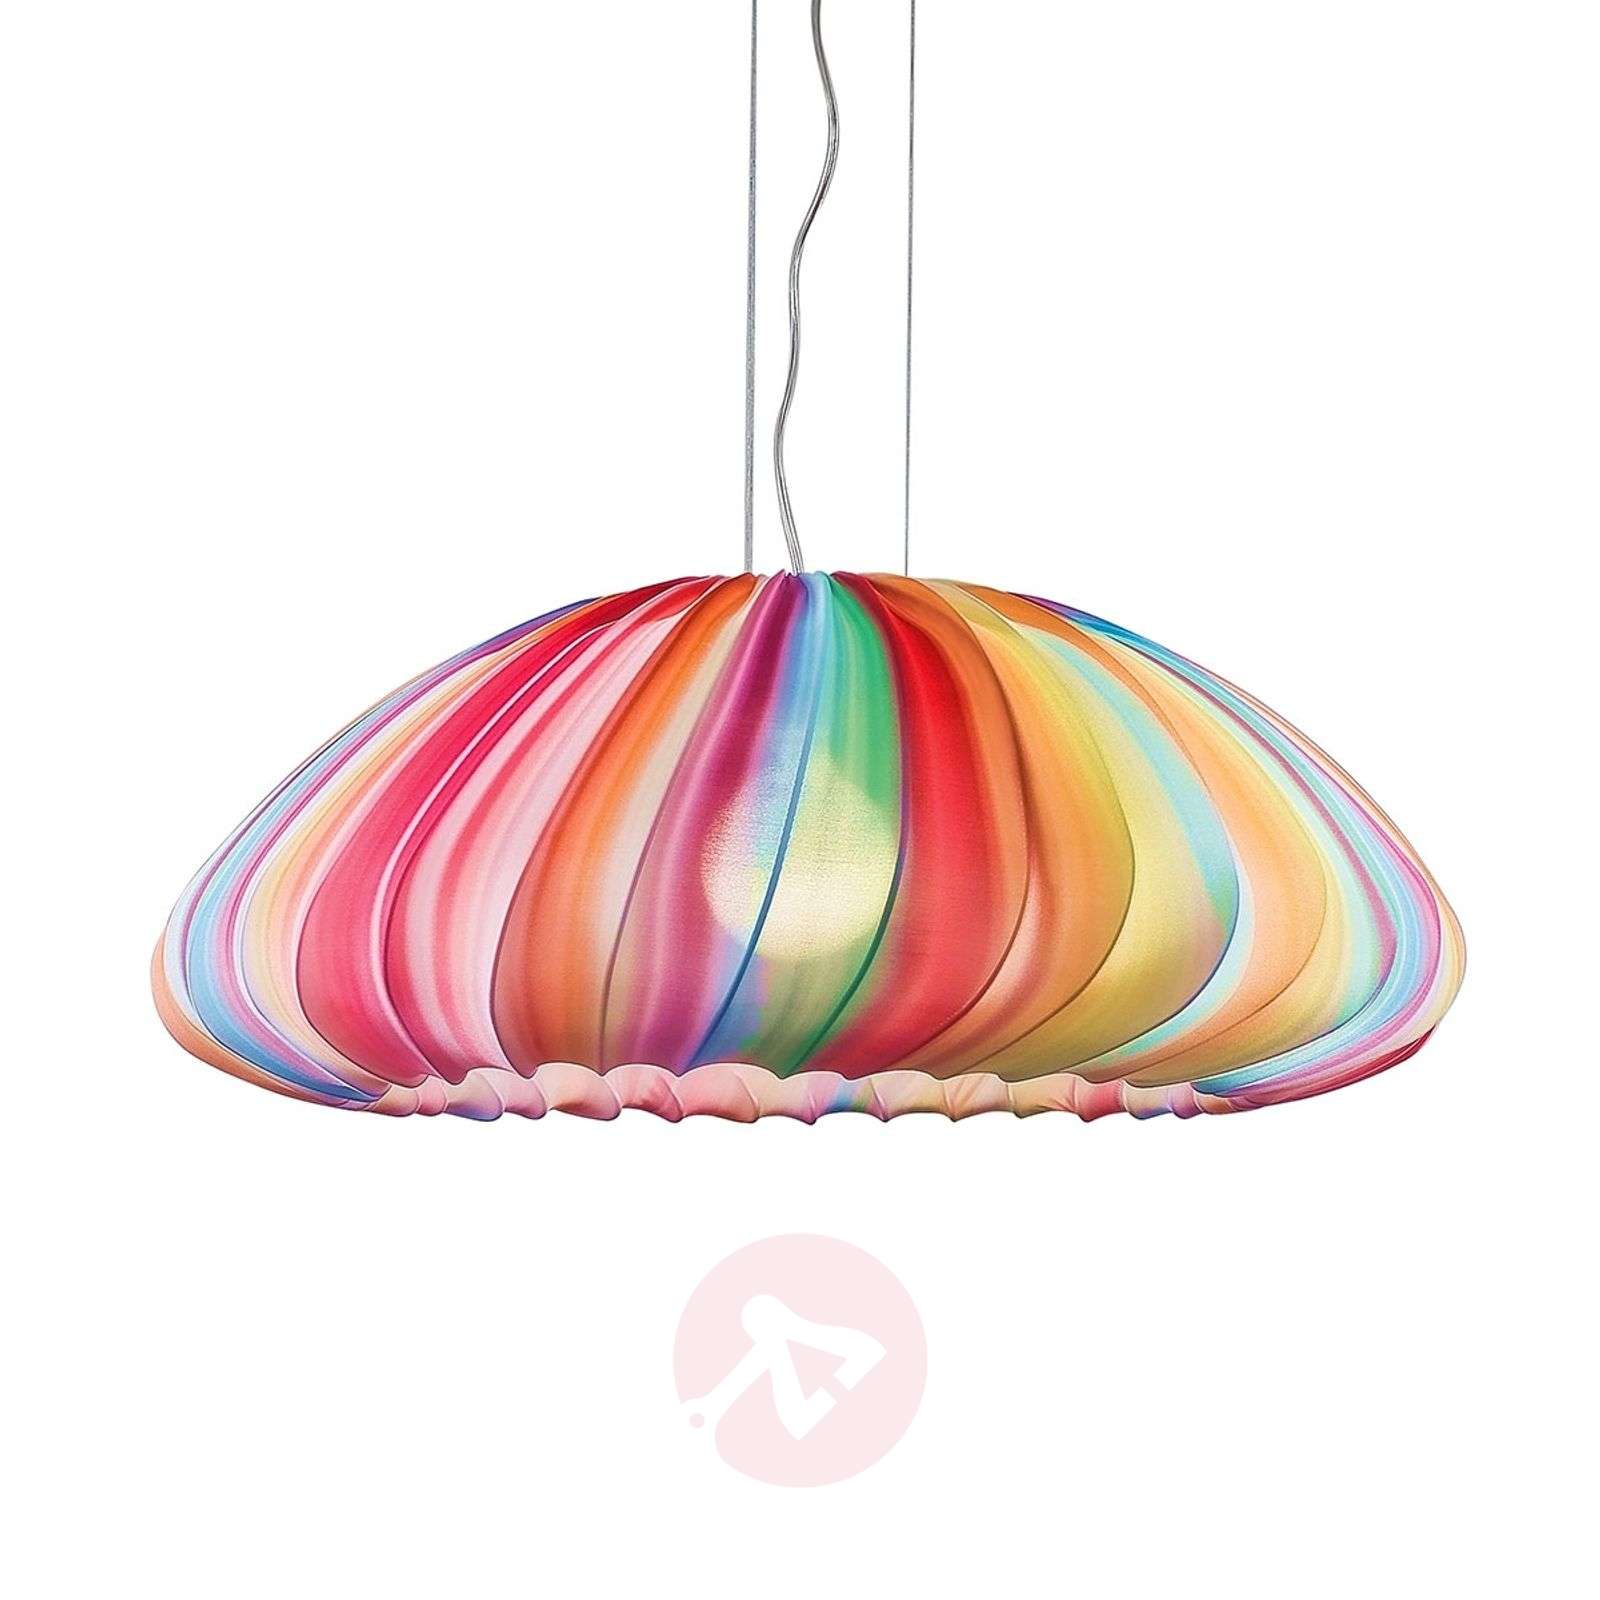 Suspension Muse aux jolies couleurs-1088015-01